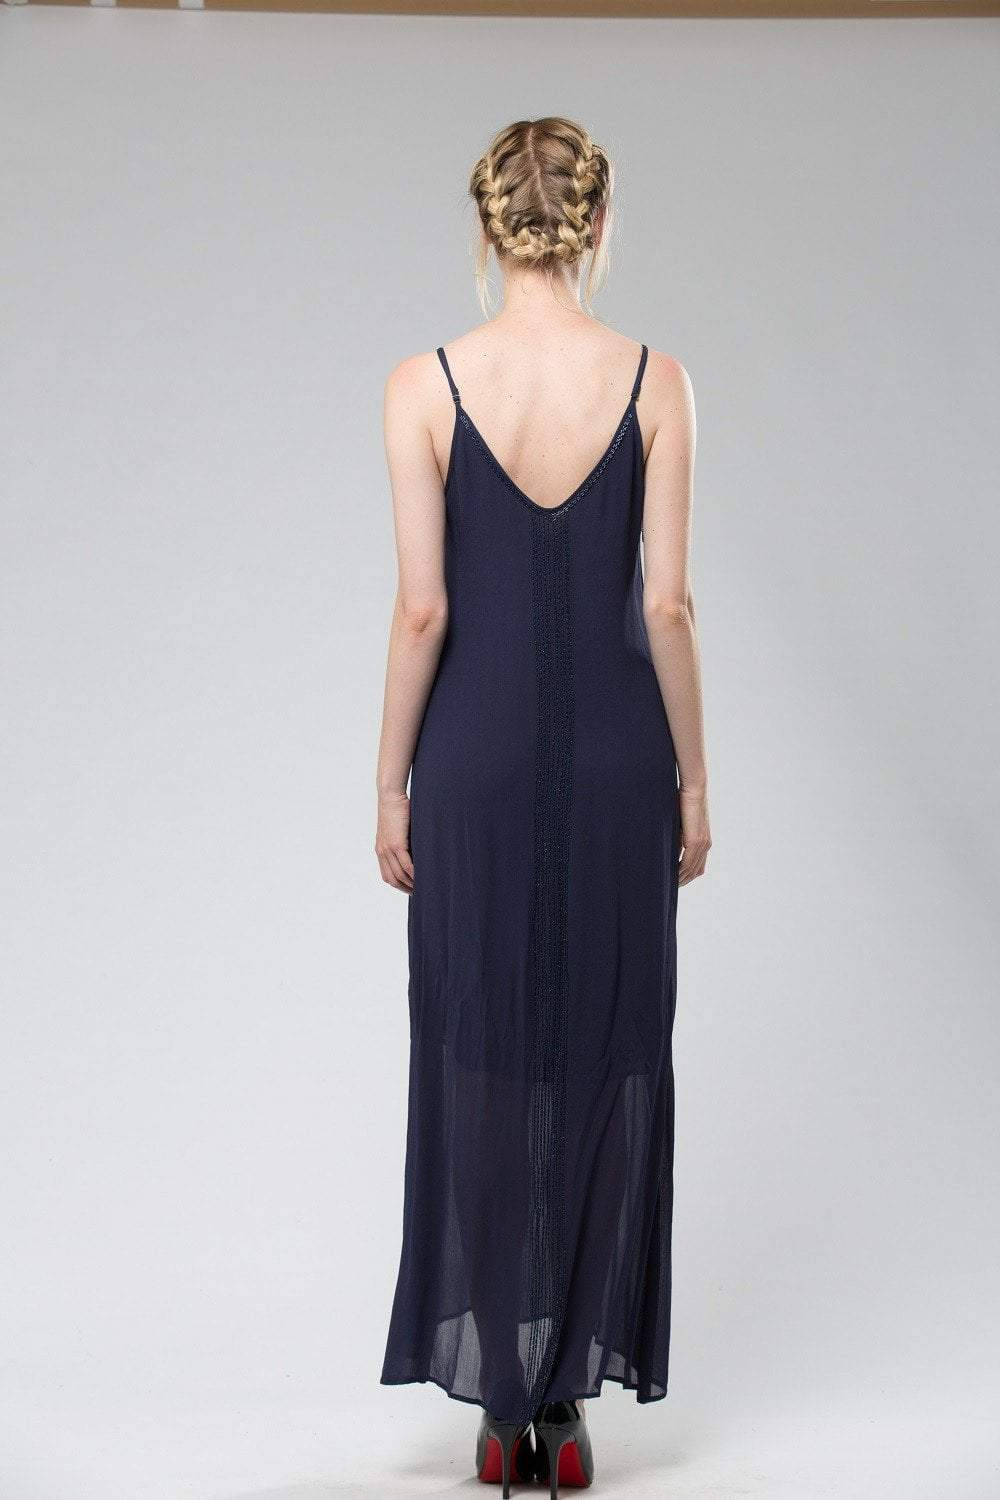 ARIA - Dress Navy